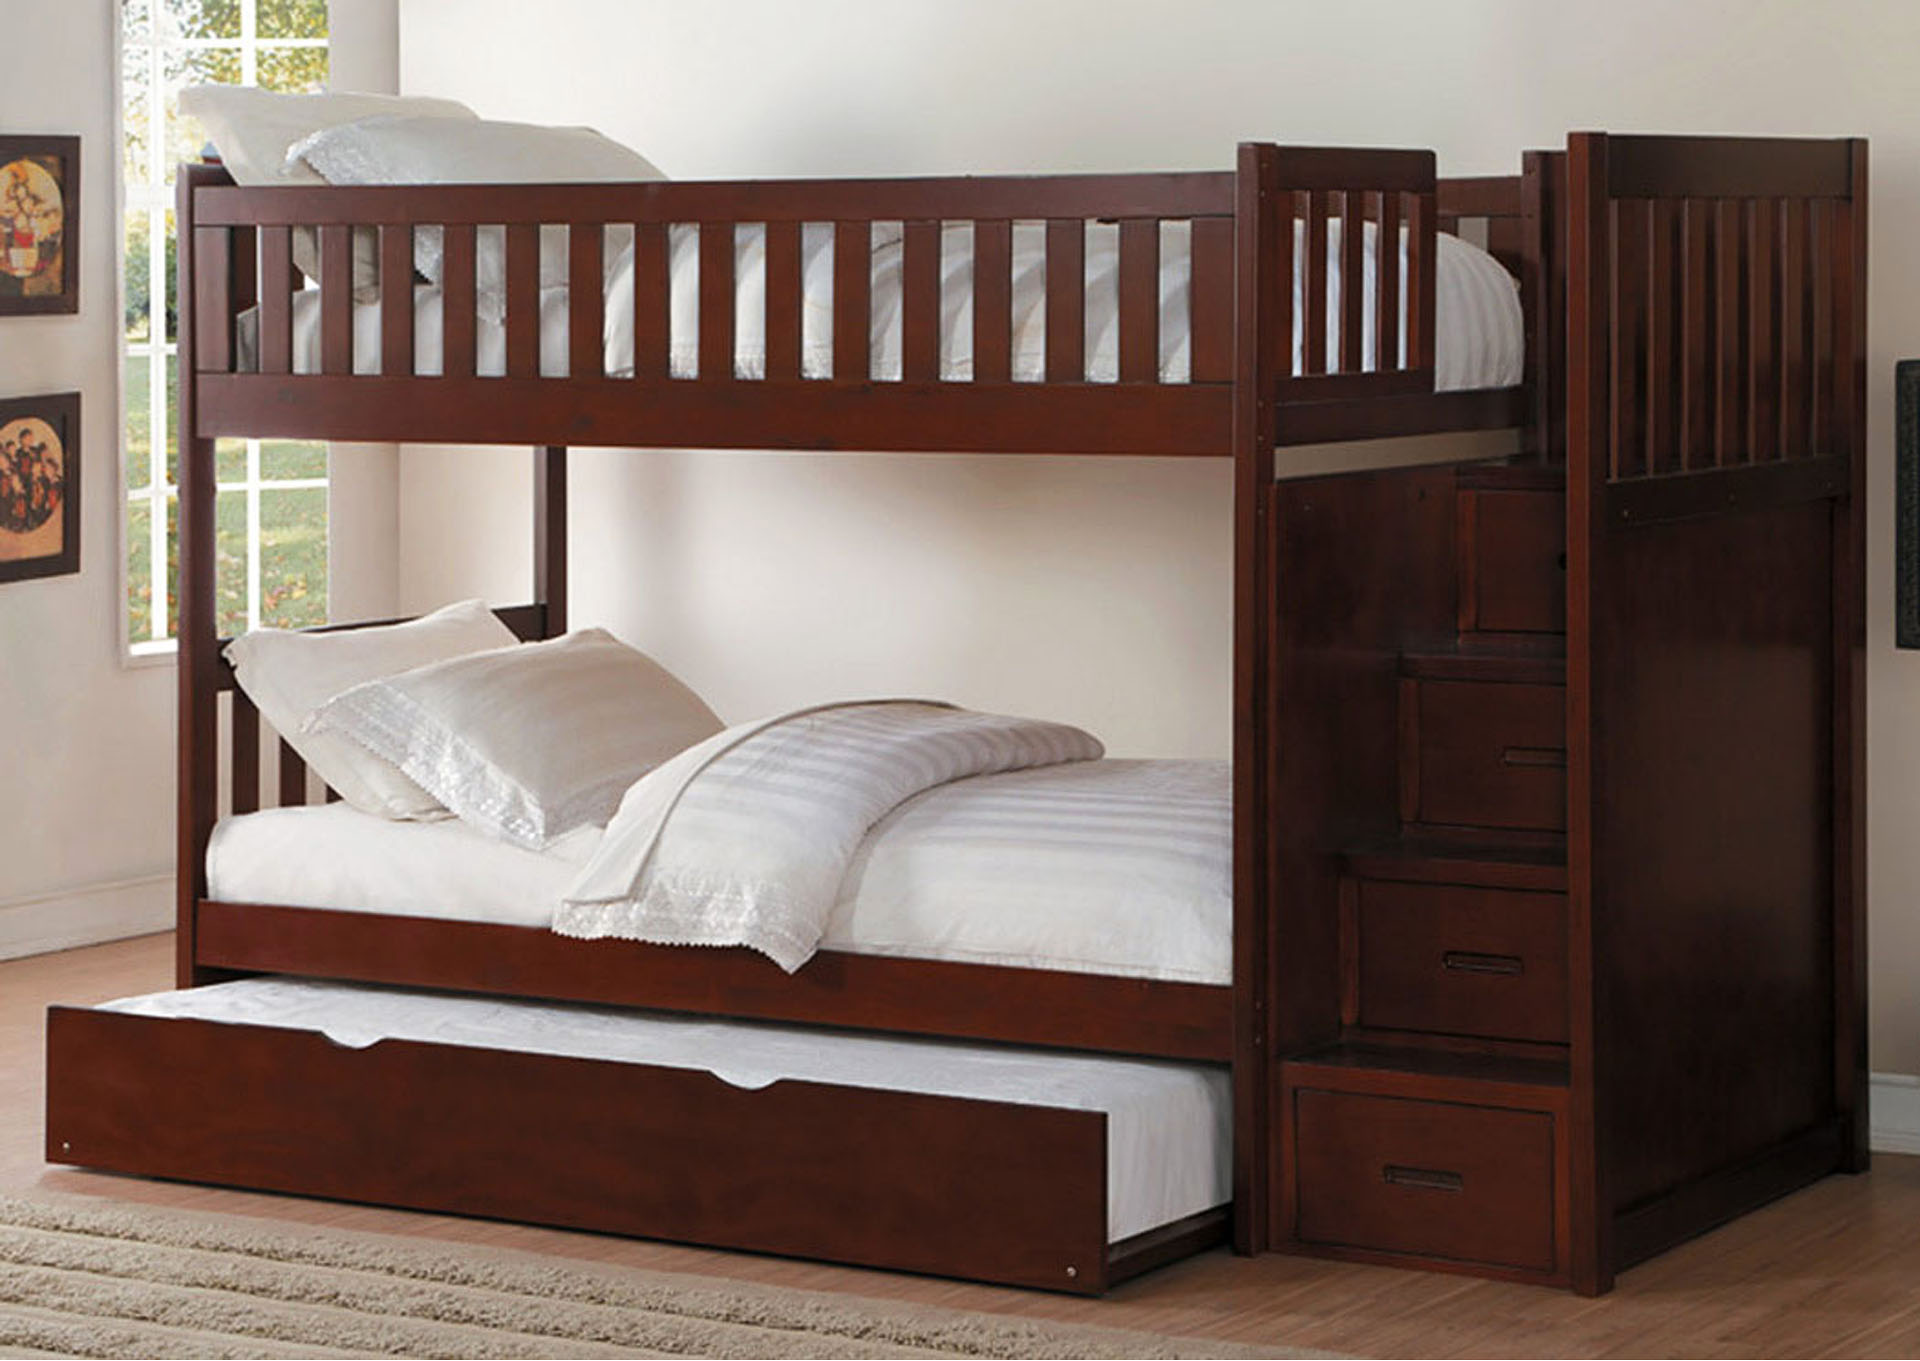 New Deal Mercantile Furniture Twintwin Trundle Bed W2 Storage Drawers